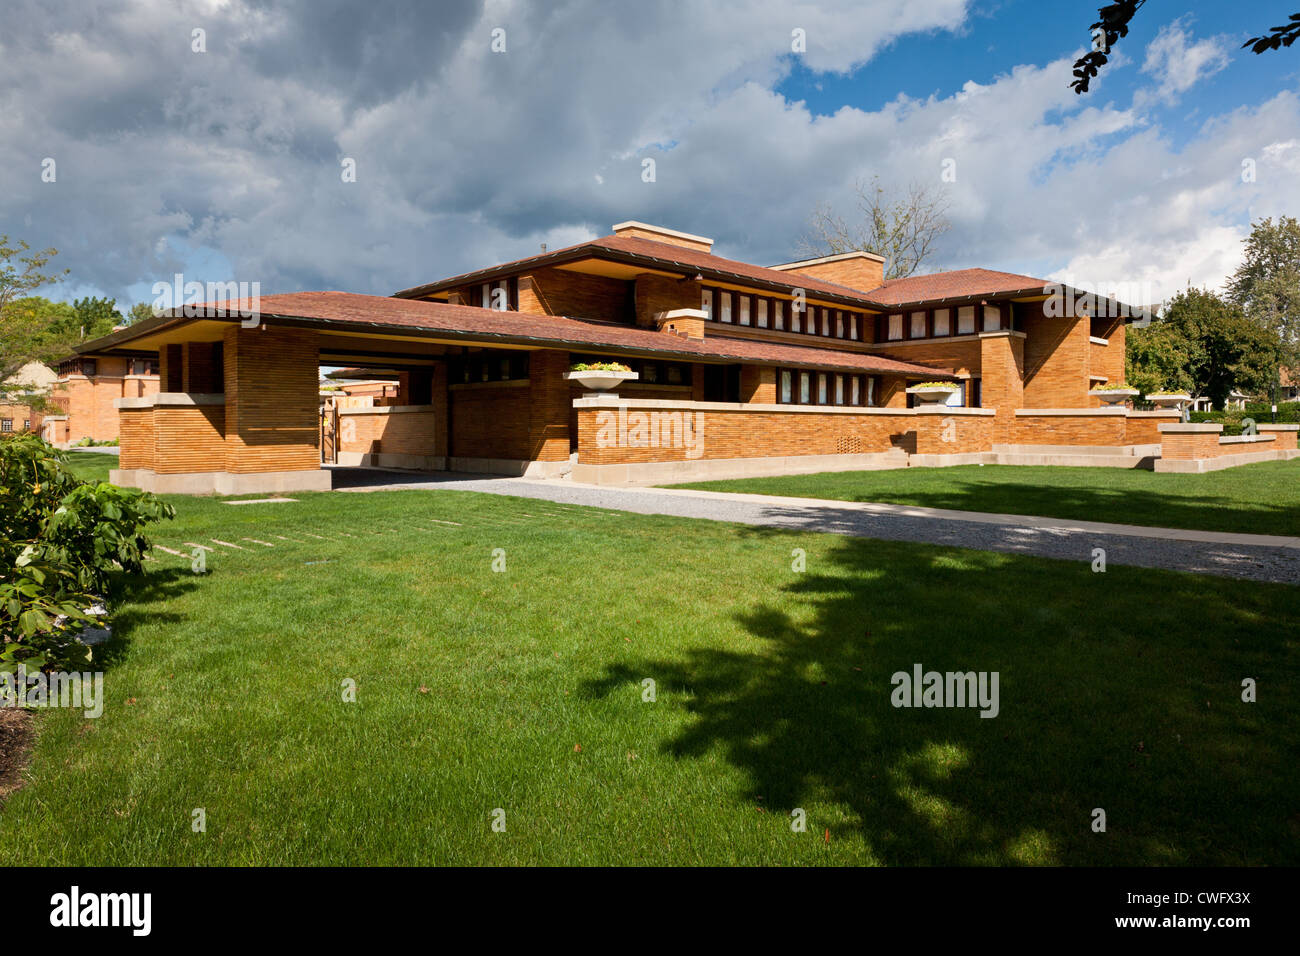 Darwin d martin casa di frank lloyd wright buffalo new for Frank lloyd wright piani per la casa